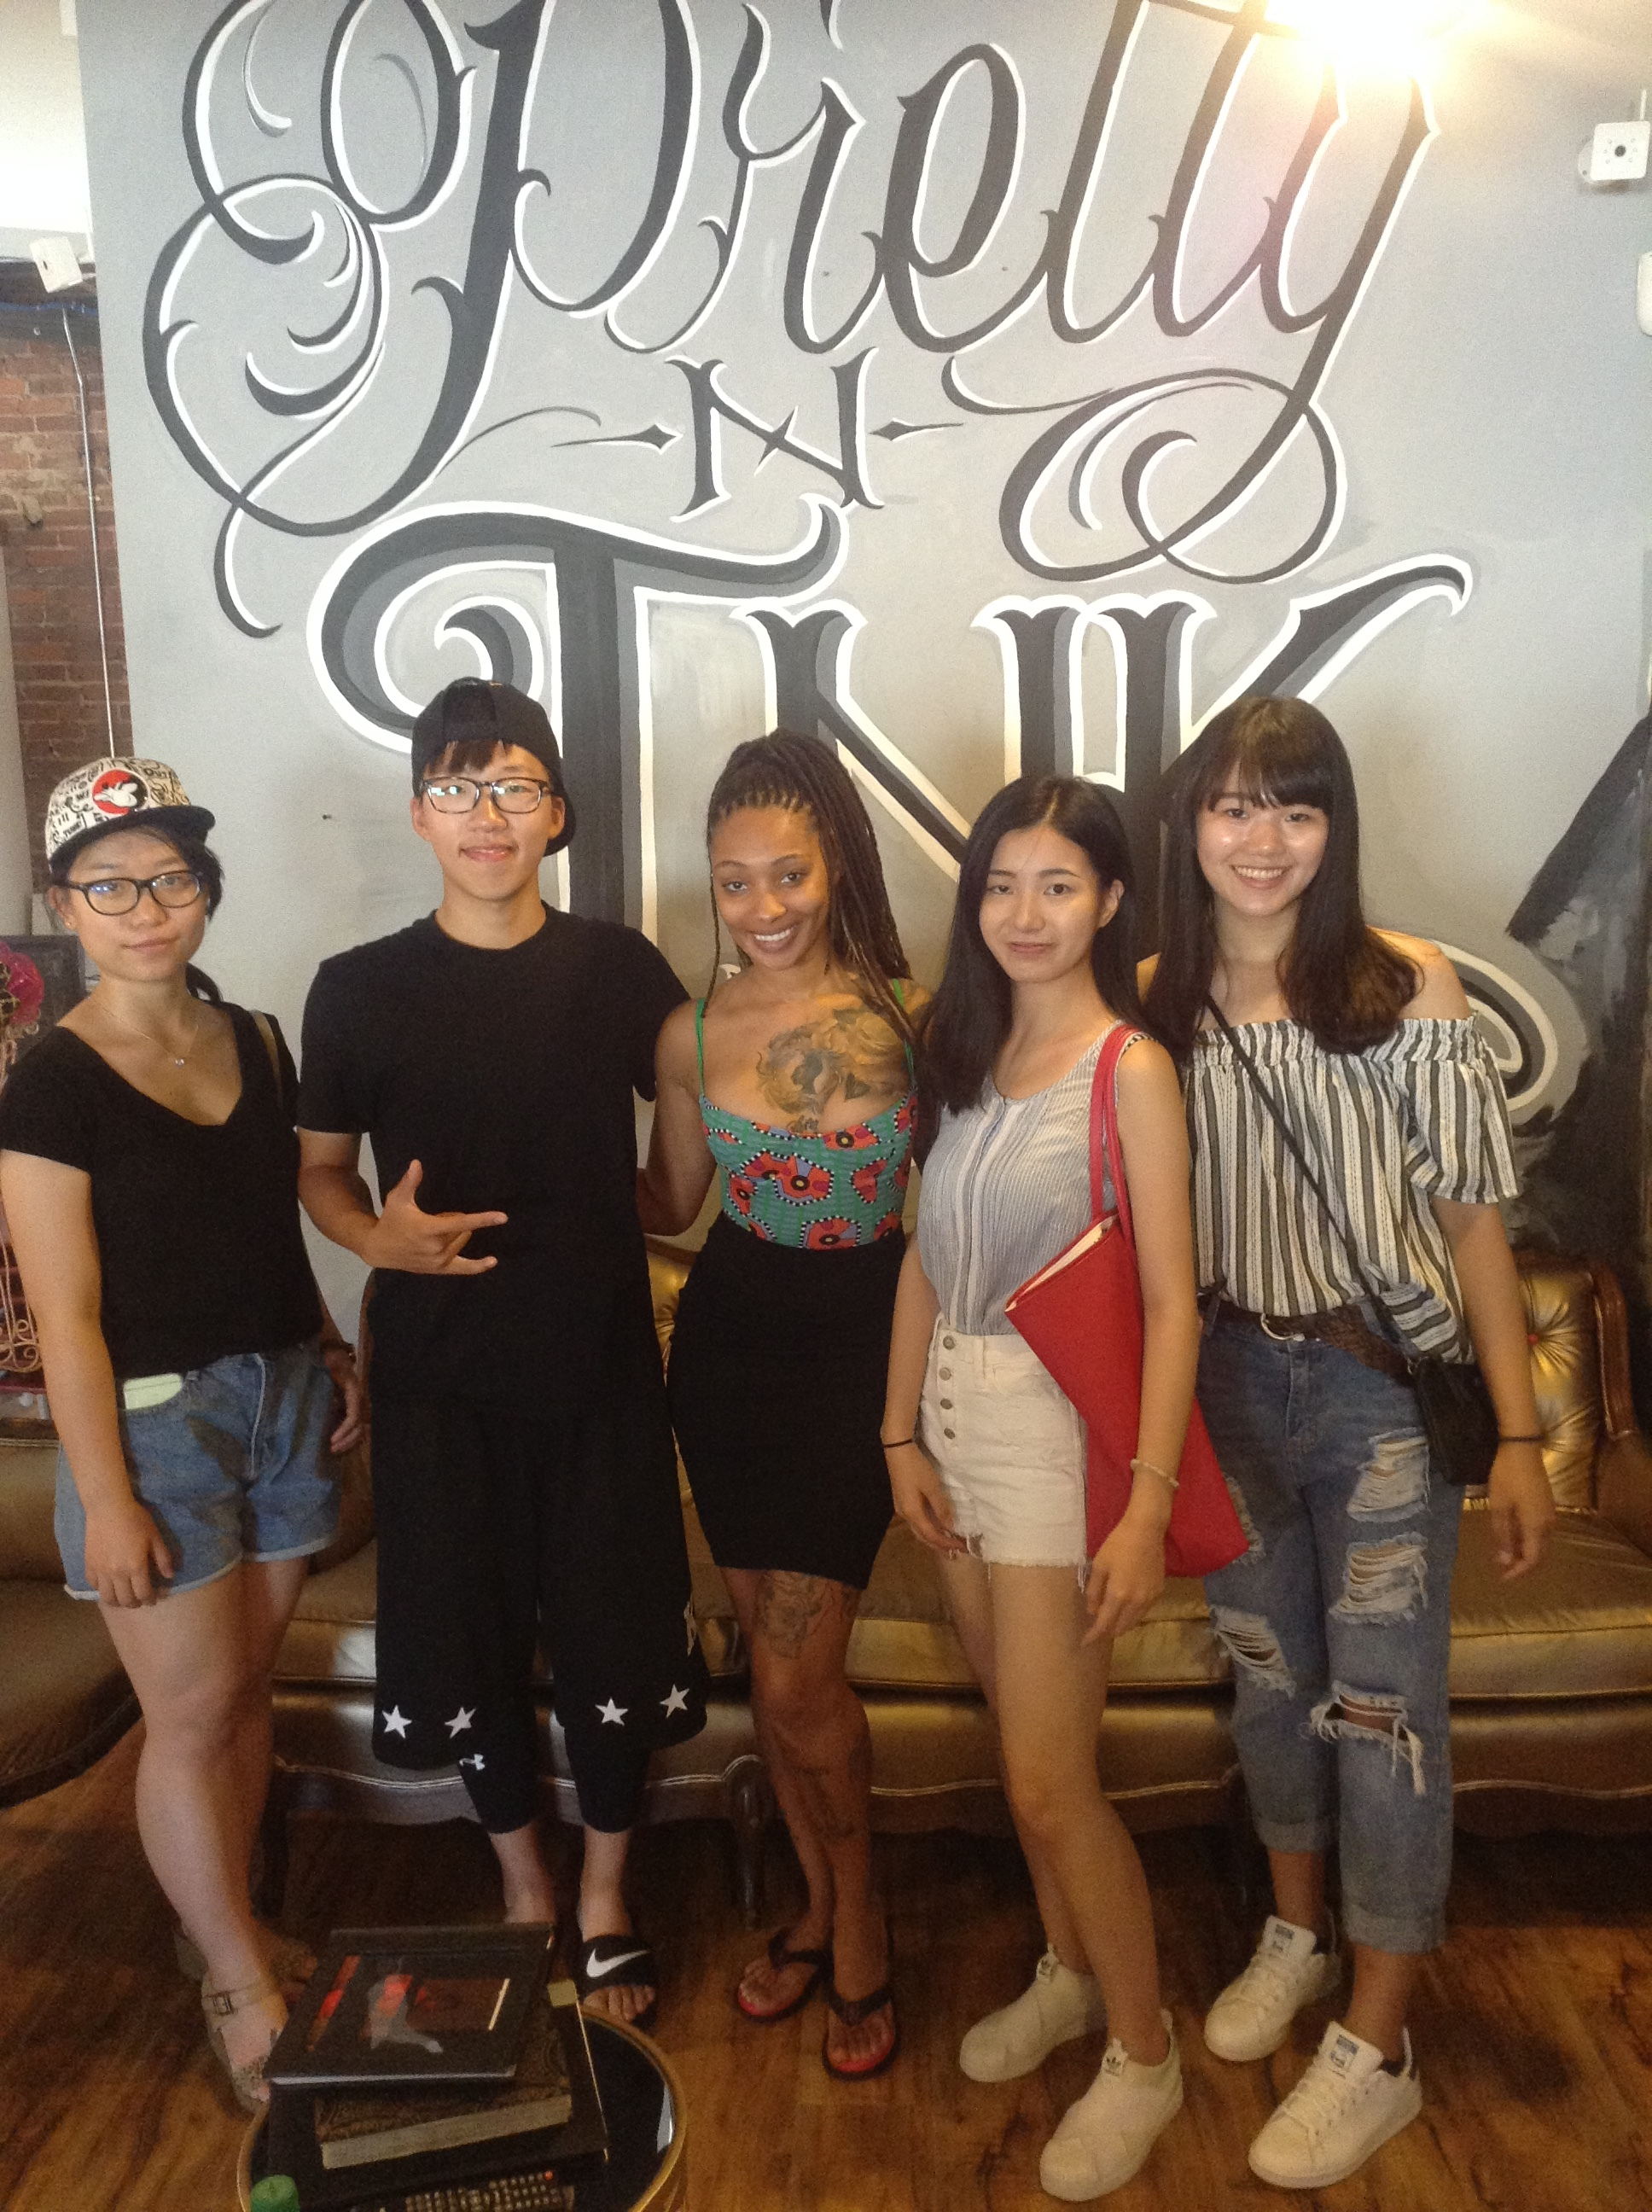 Exchange students from Shanghai and Taiwan came to get their first tats with Dutchess during their first time in America.